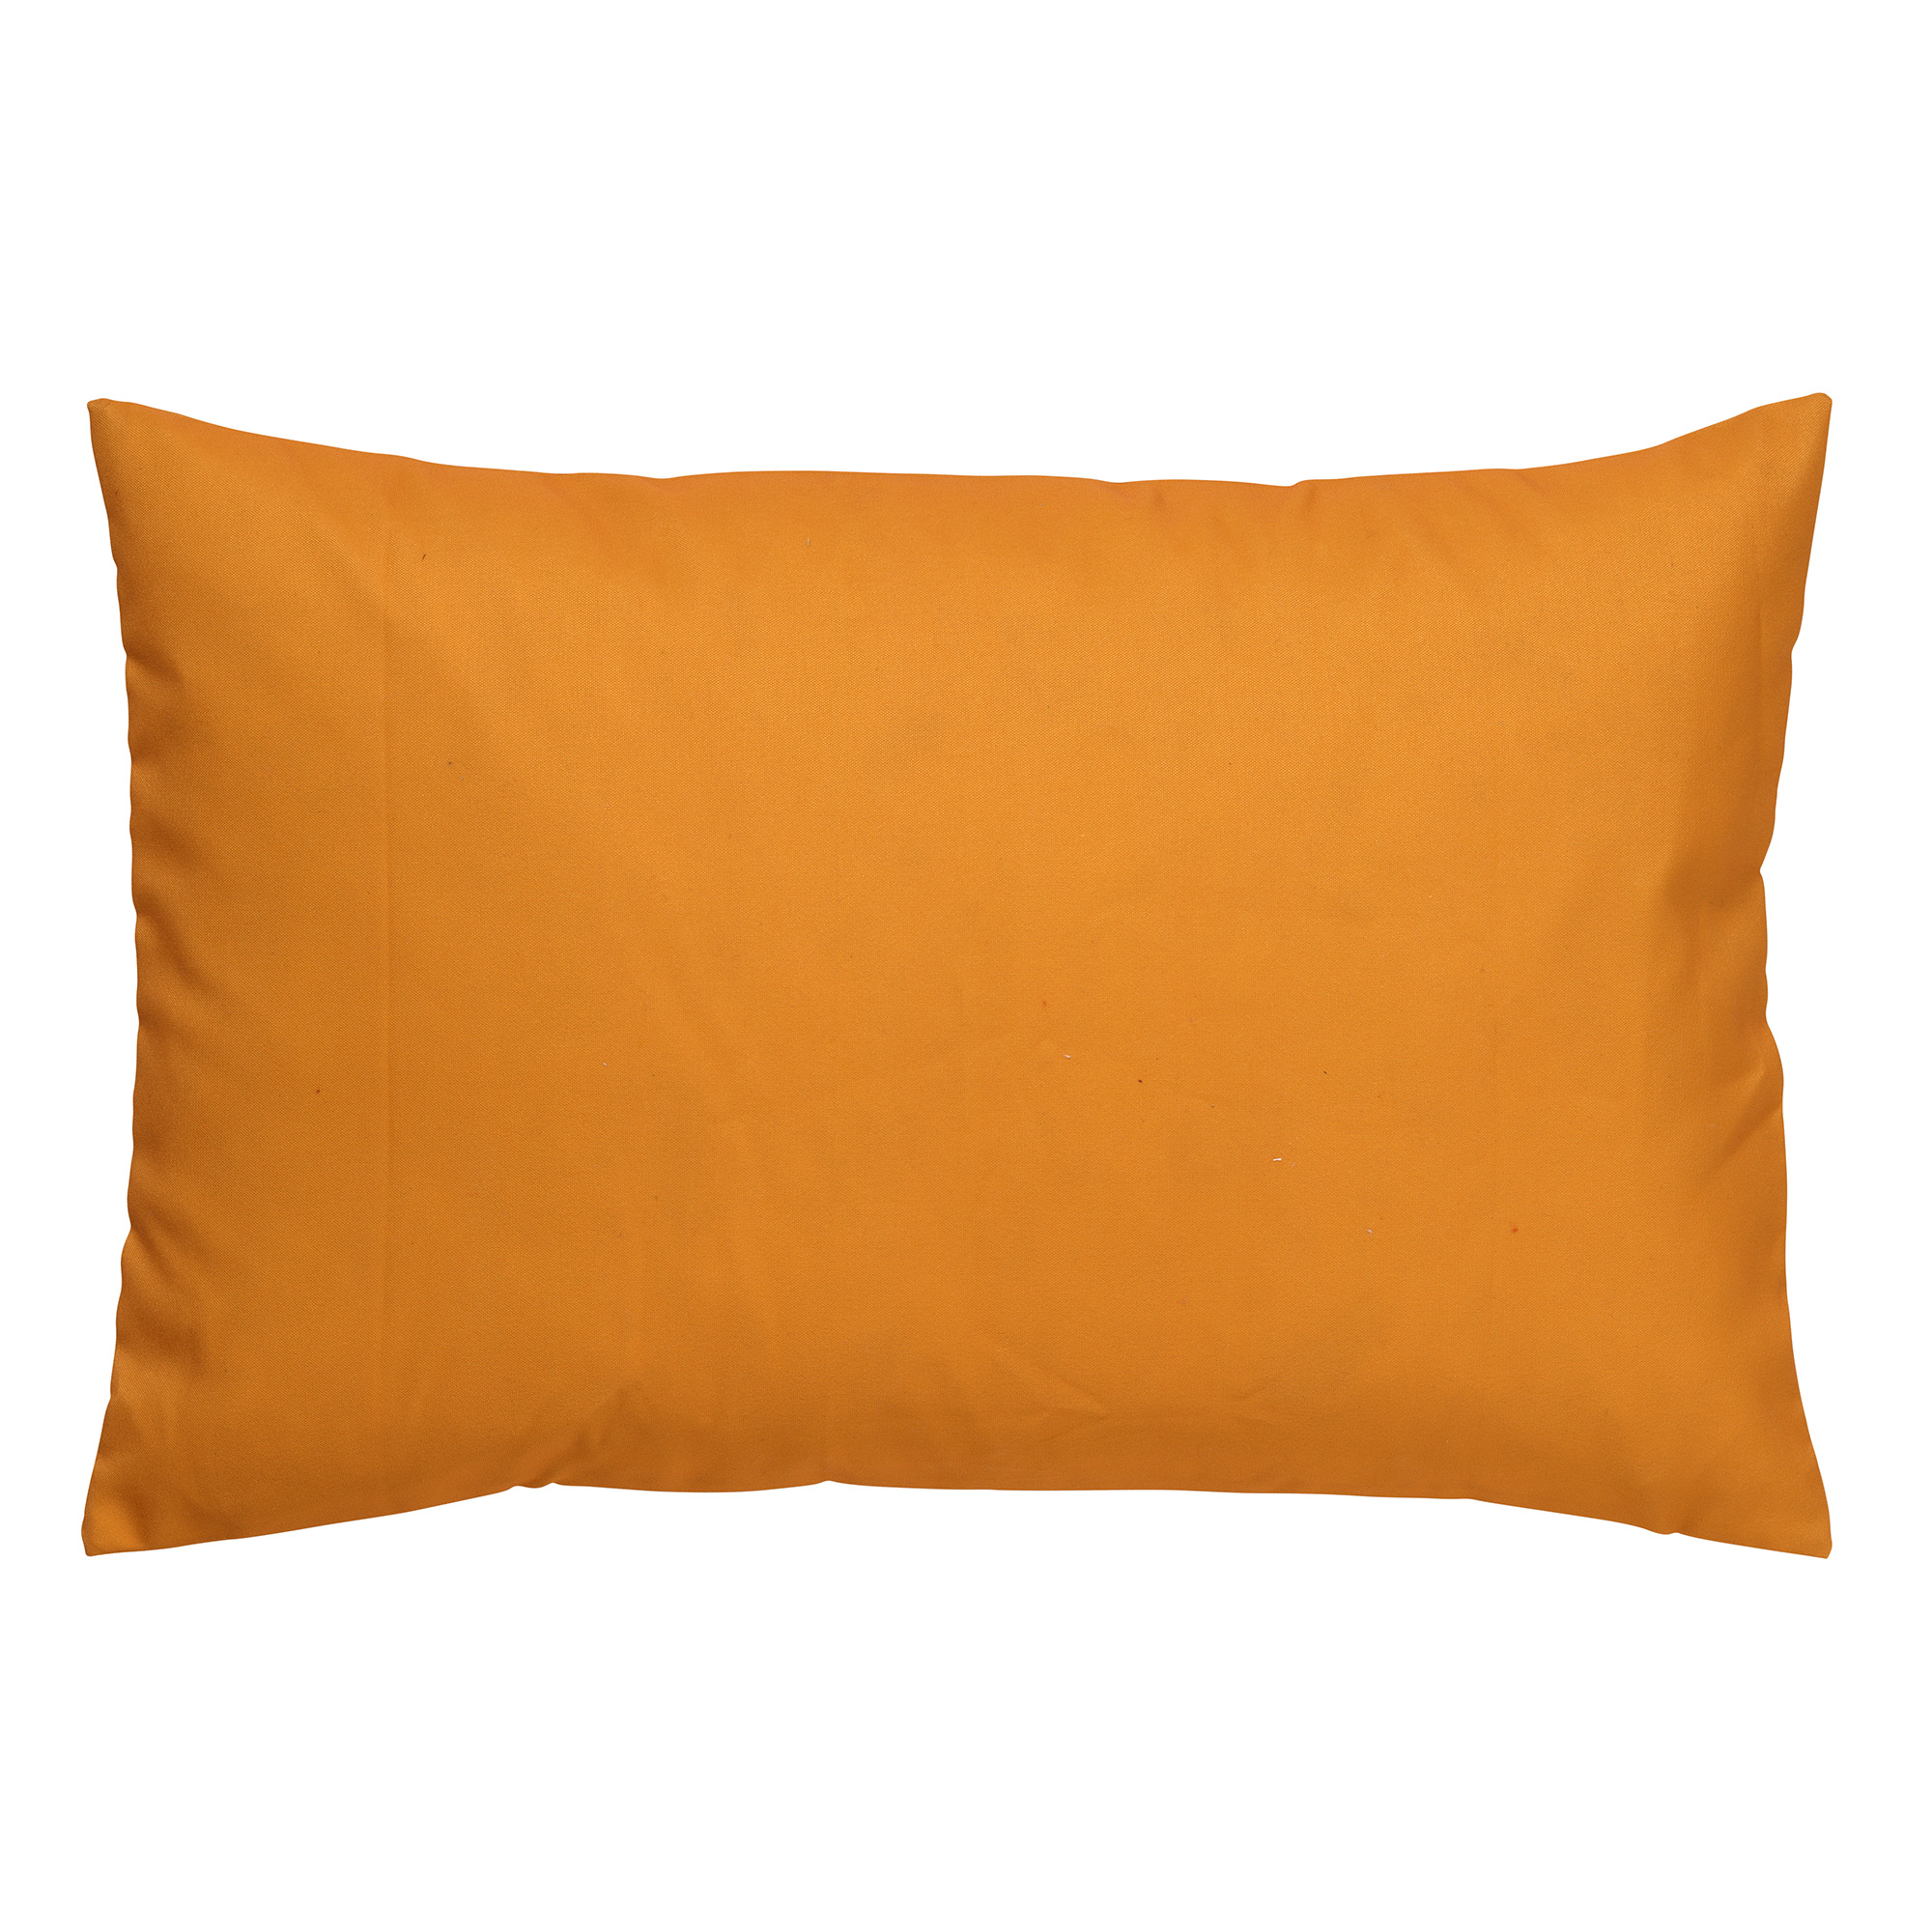 SANTORINI - Kussenhoes outdoor Golden Glow 40x60 cm